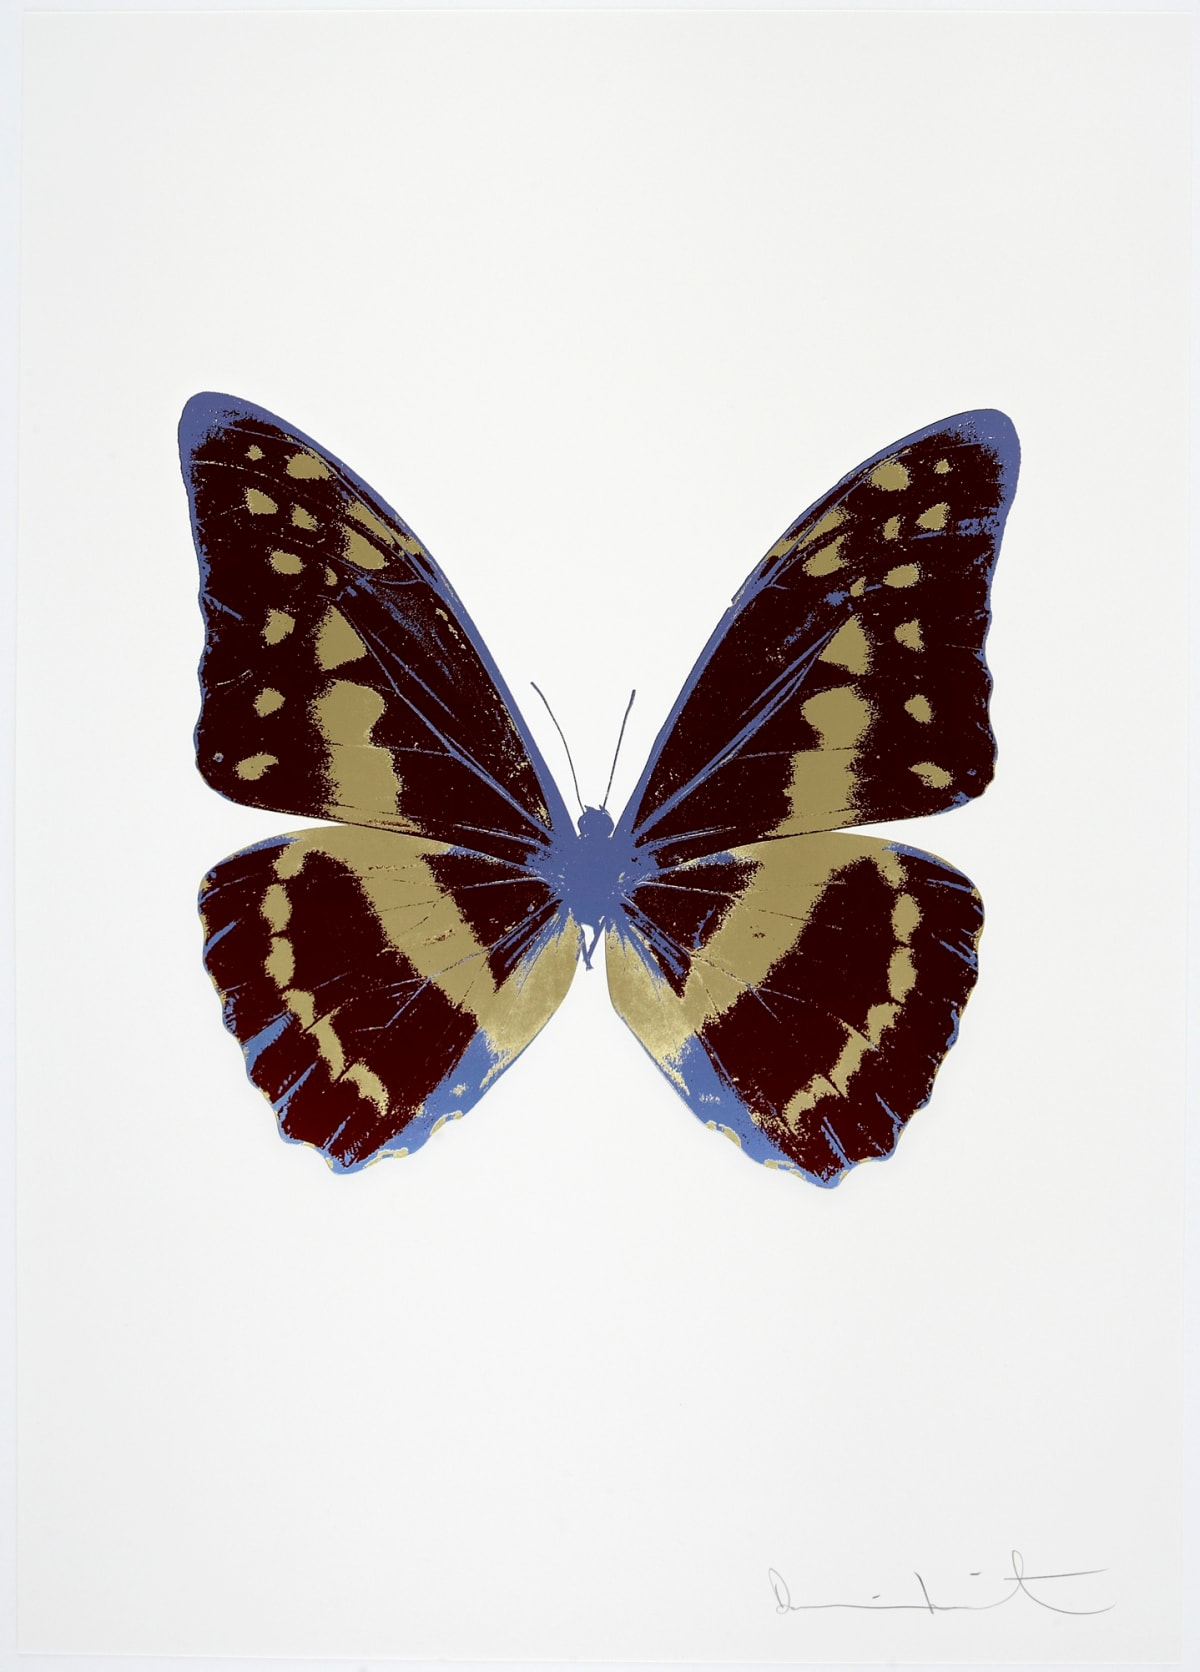 Damien Hirst The Souls III - Burgundy/Cool Gold/Cornflower Blue, 2010 3 colour foil block on 300gsm Arches 88 archival paper. Signed and numbered. Published by Paul Stolper and Other Criteria 72 x 51cm OC7972 / 660-75 Edition of 15